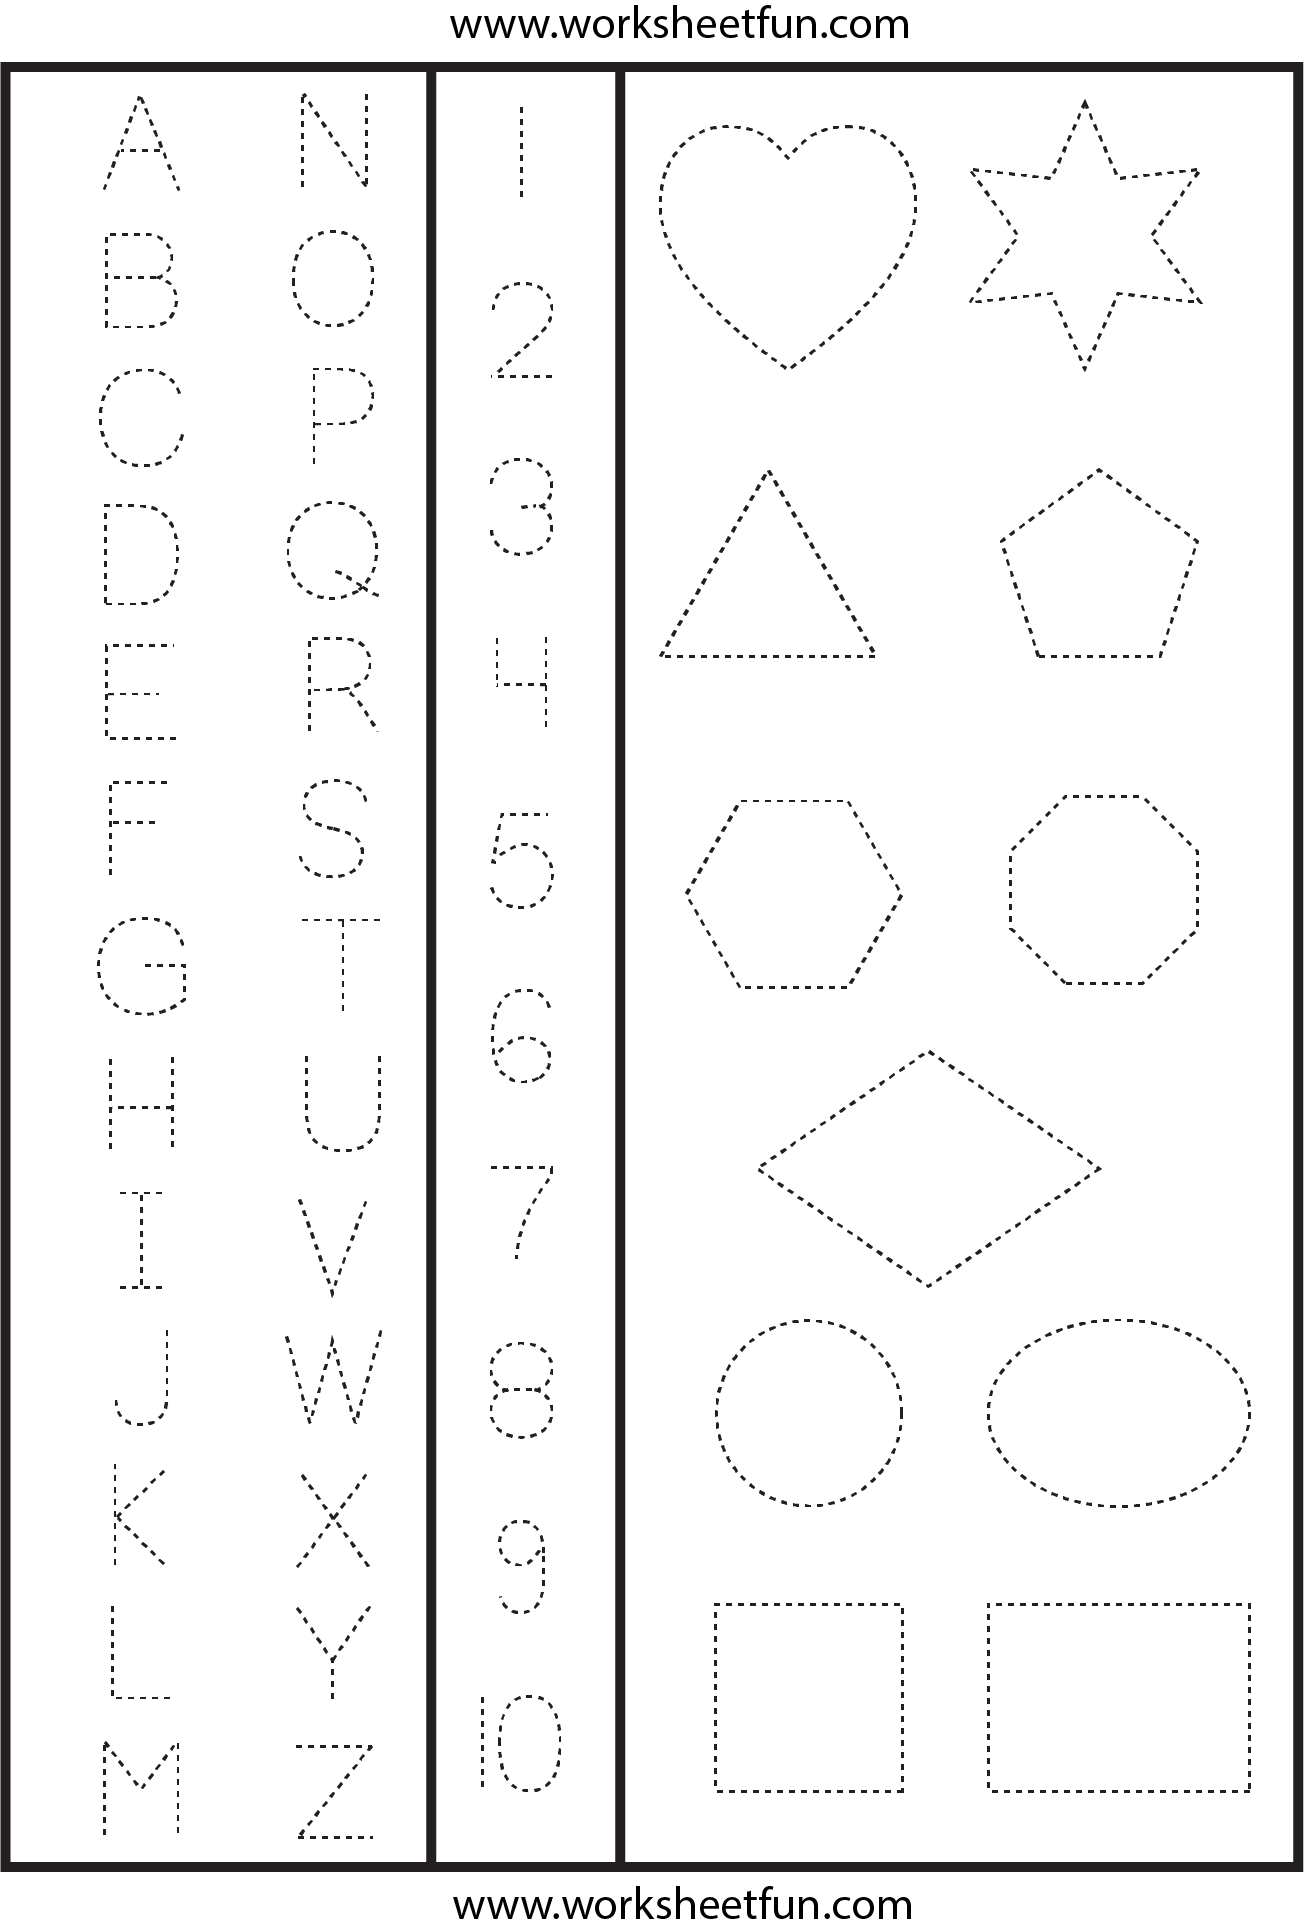 Tracing Numbers Alphabet